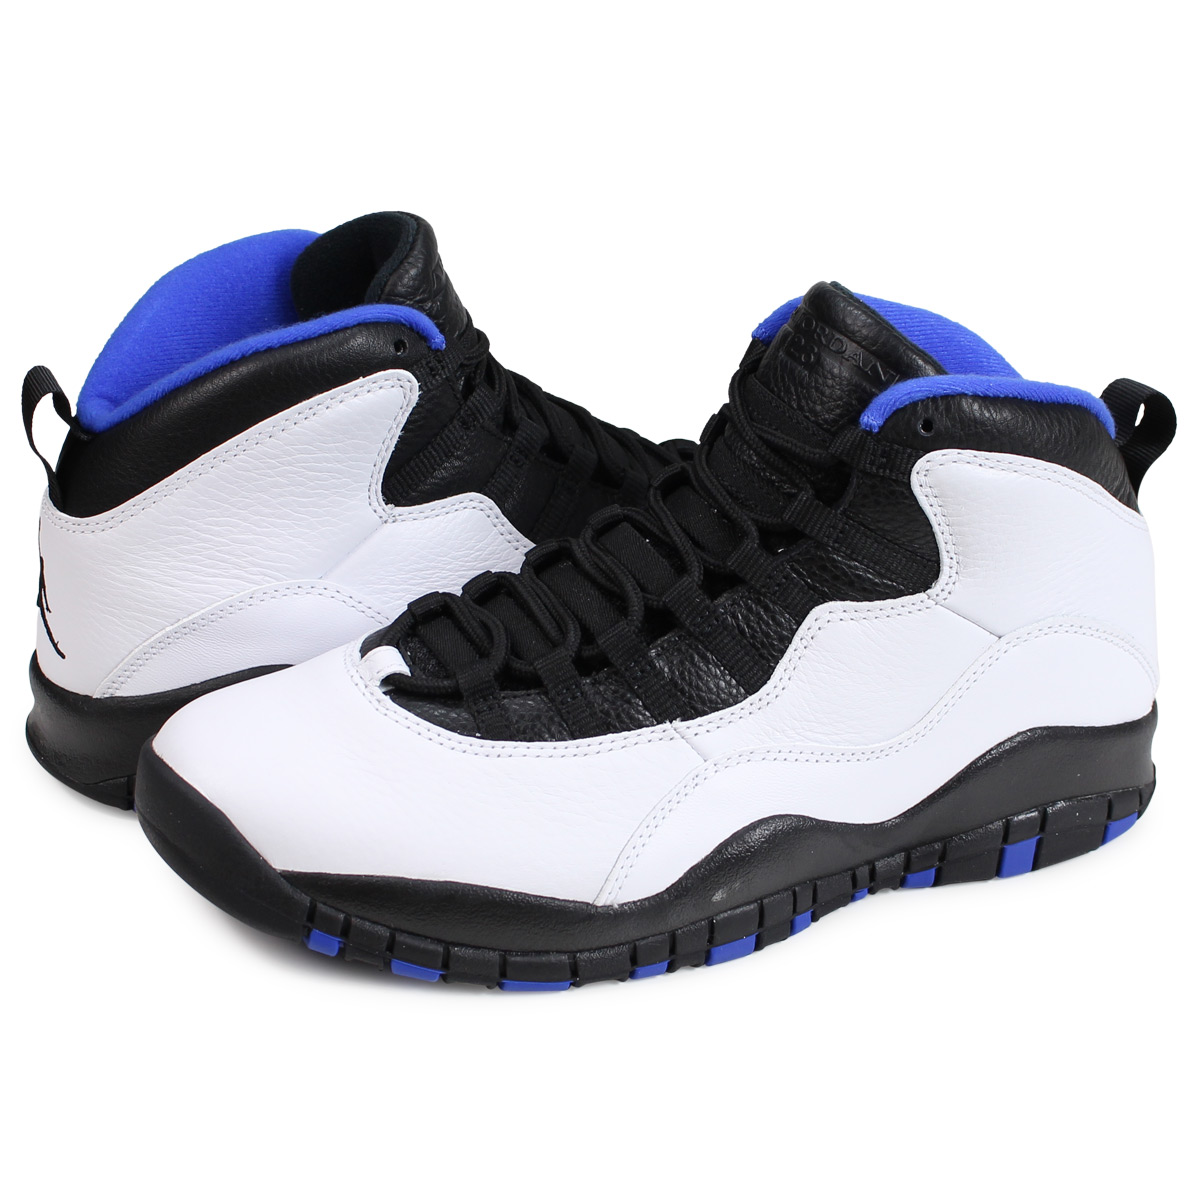 check out ec7e8 ebfe8 Nike NIKE Air Jordan 10 nostalgic sneakers men AIR JORDAN 10 RETRO ORLANDO  white 310,805-108  load planned Shinnyu load in reservation product 12 11  ...